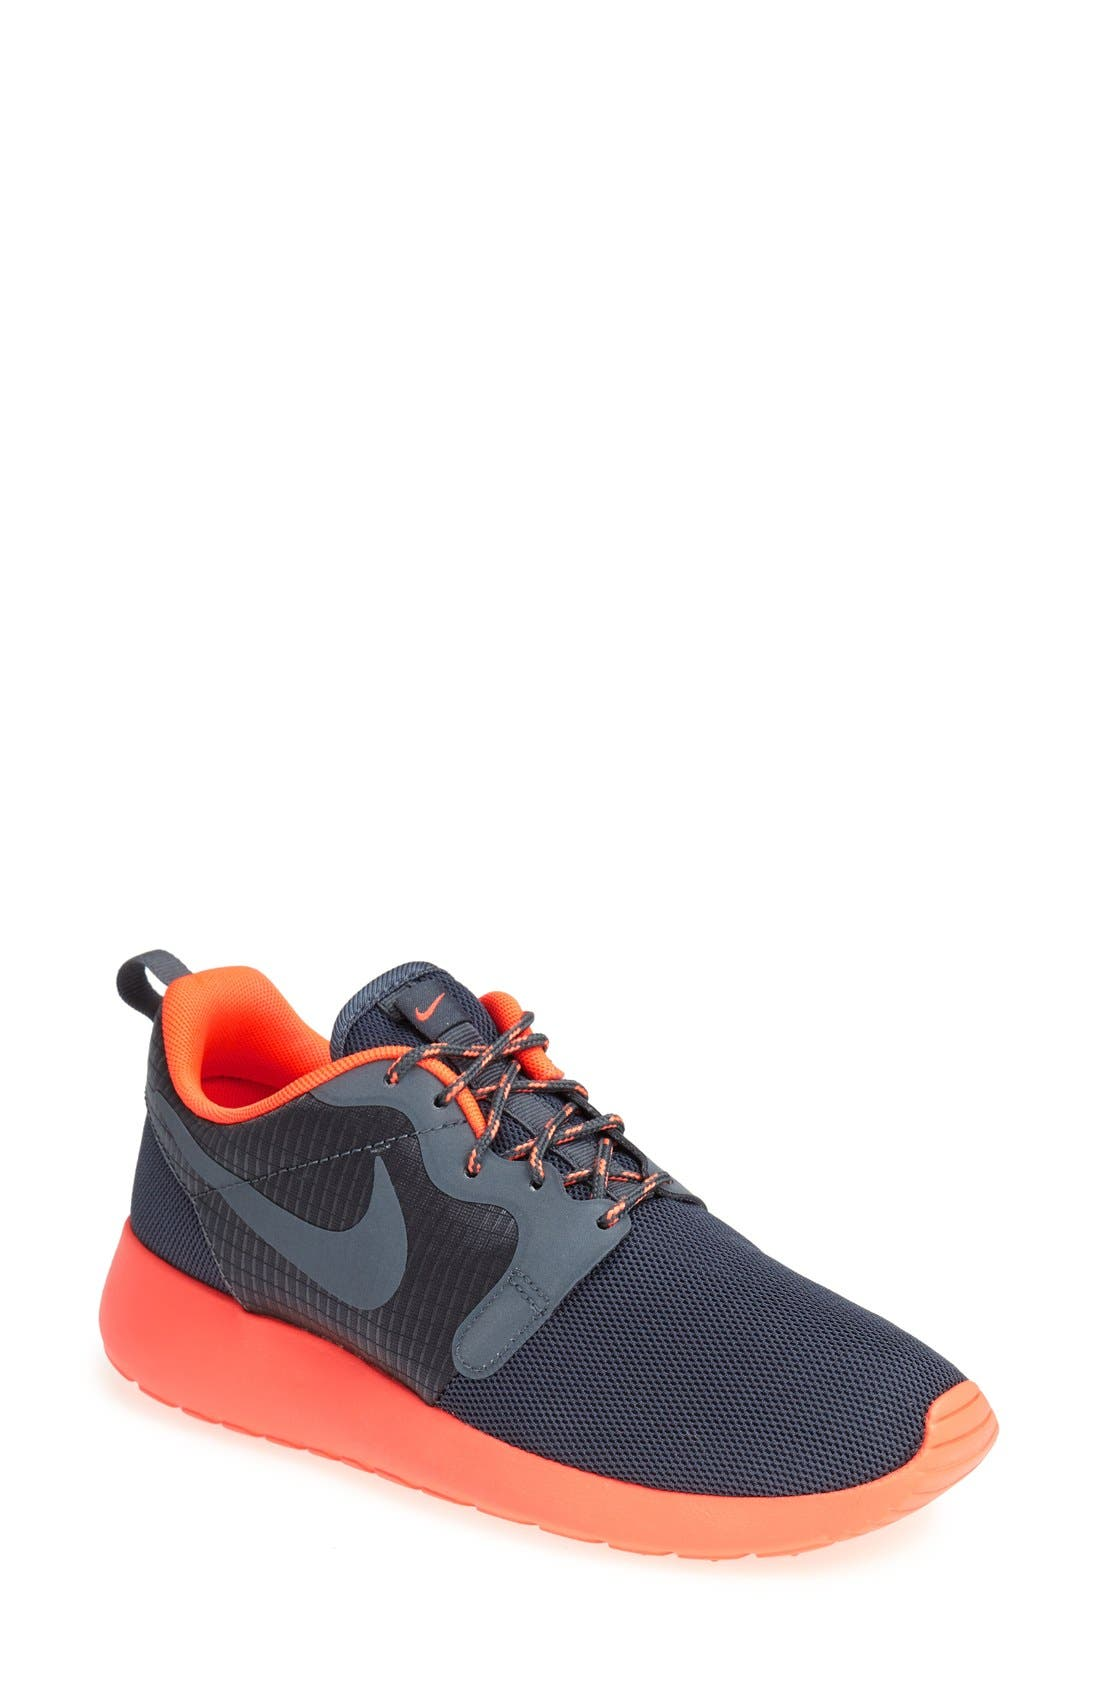 Alternate Image 1 Selected - Nike 'Roshe Run Hyperfuse' Sneaker (Women)